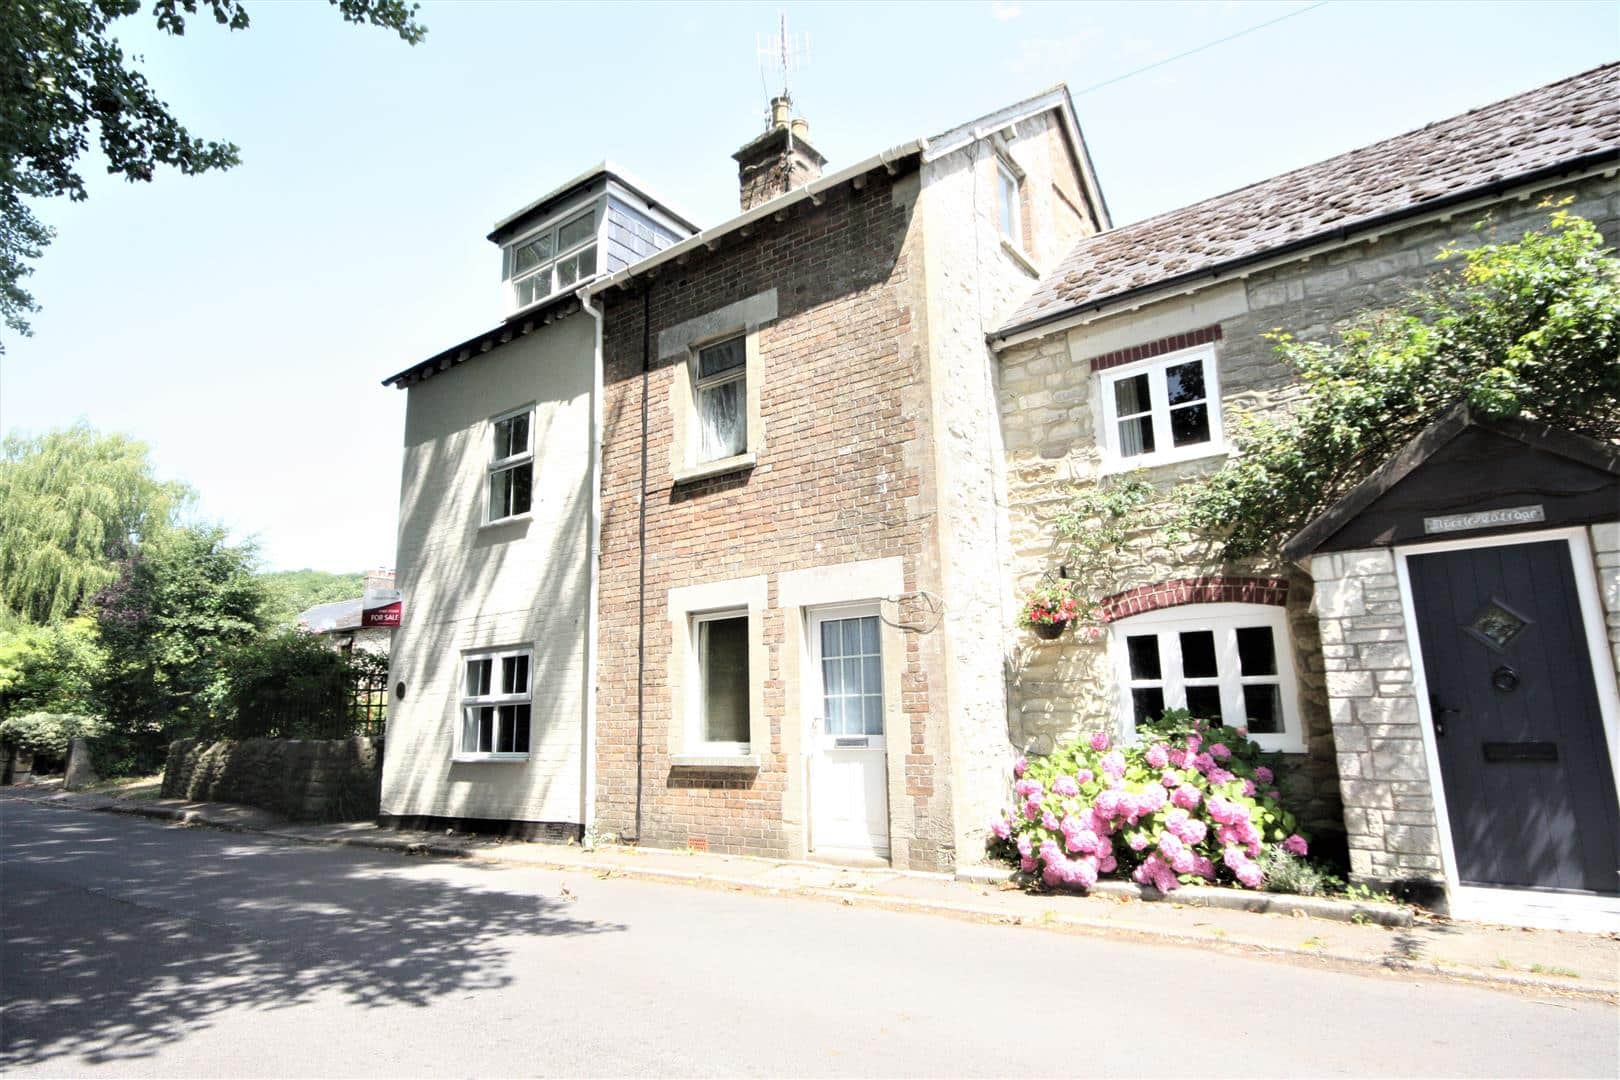 holiday cottages in dorset for sale